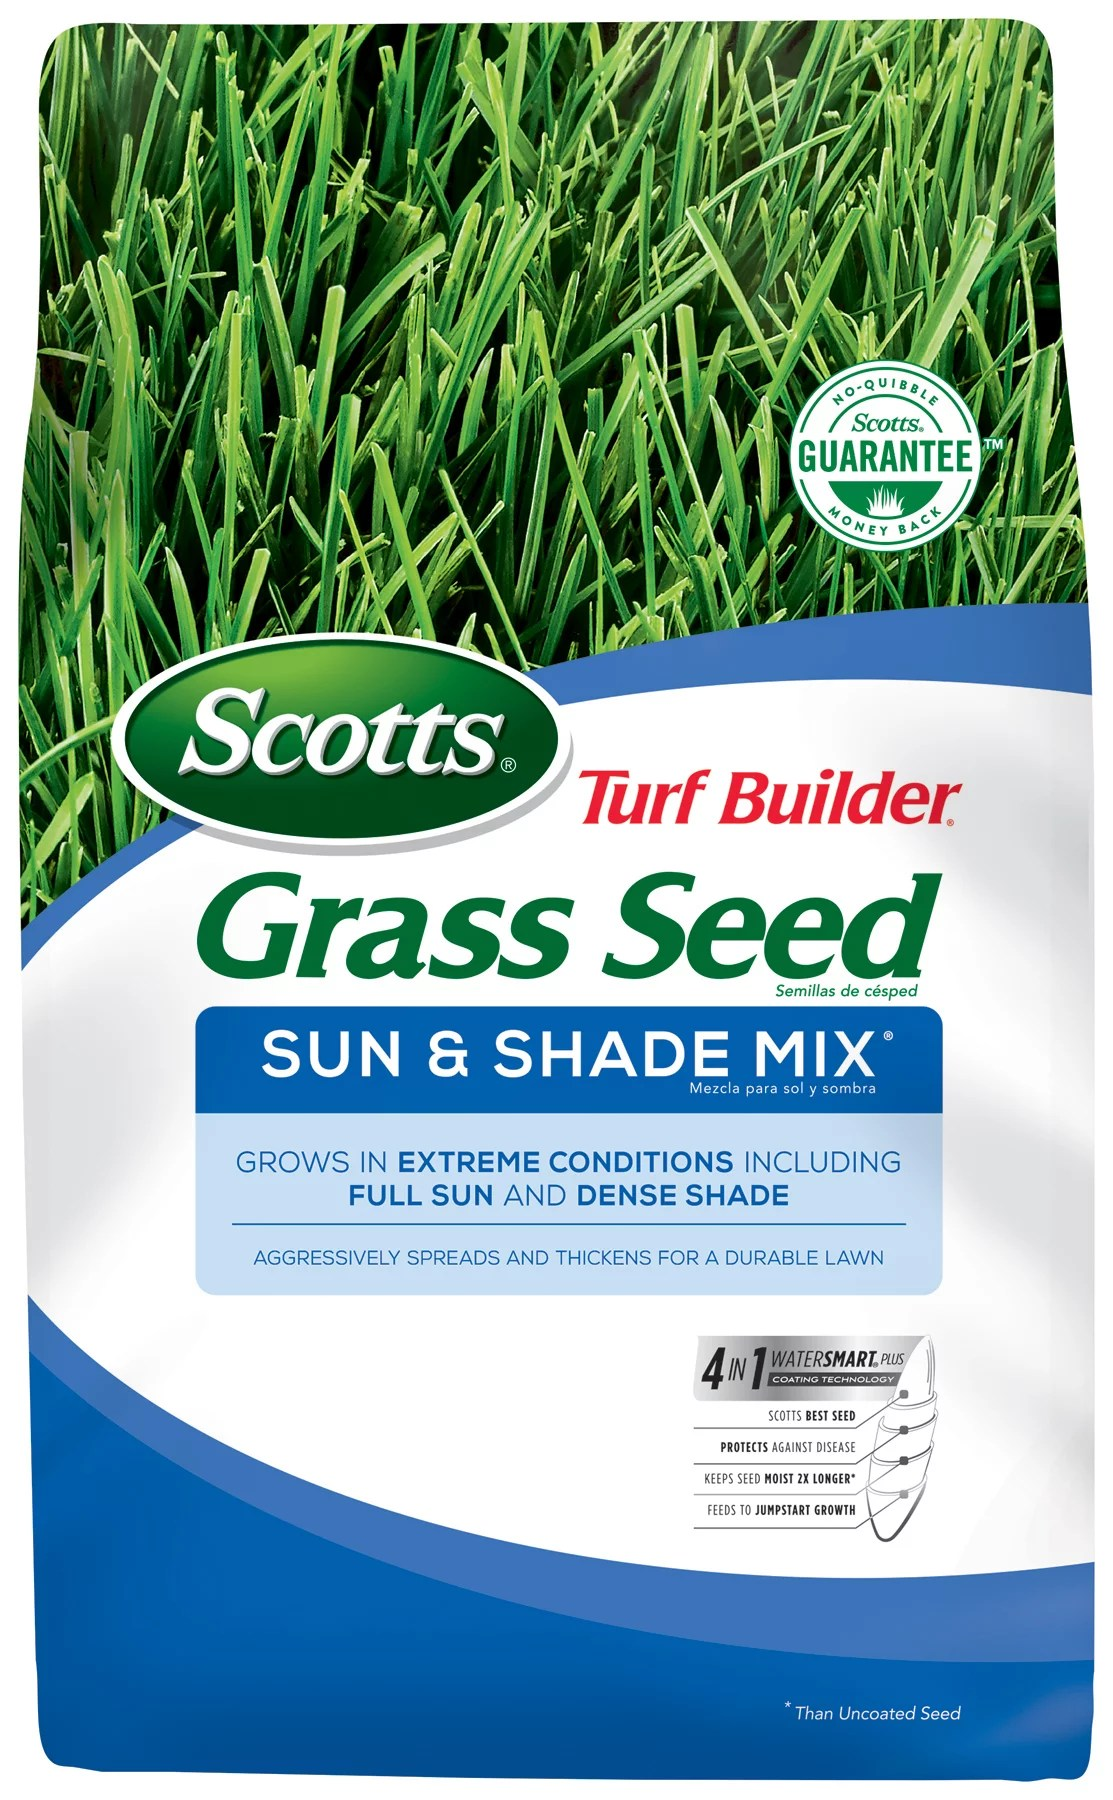 Scotts Turf Builder Grass Seed Sun & Shade Mix, 3 lb., Seeds up to 1,200 sq. ft.